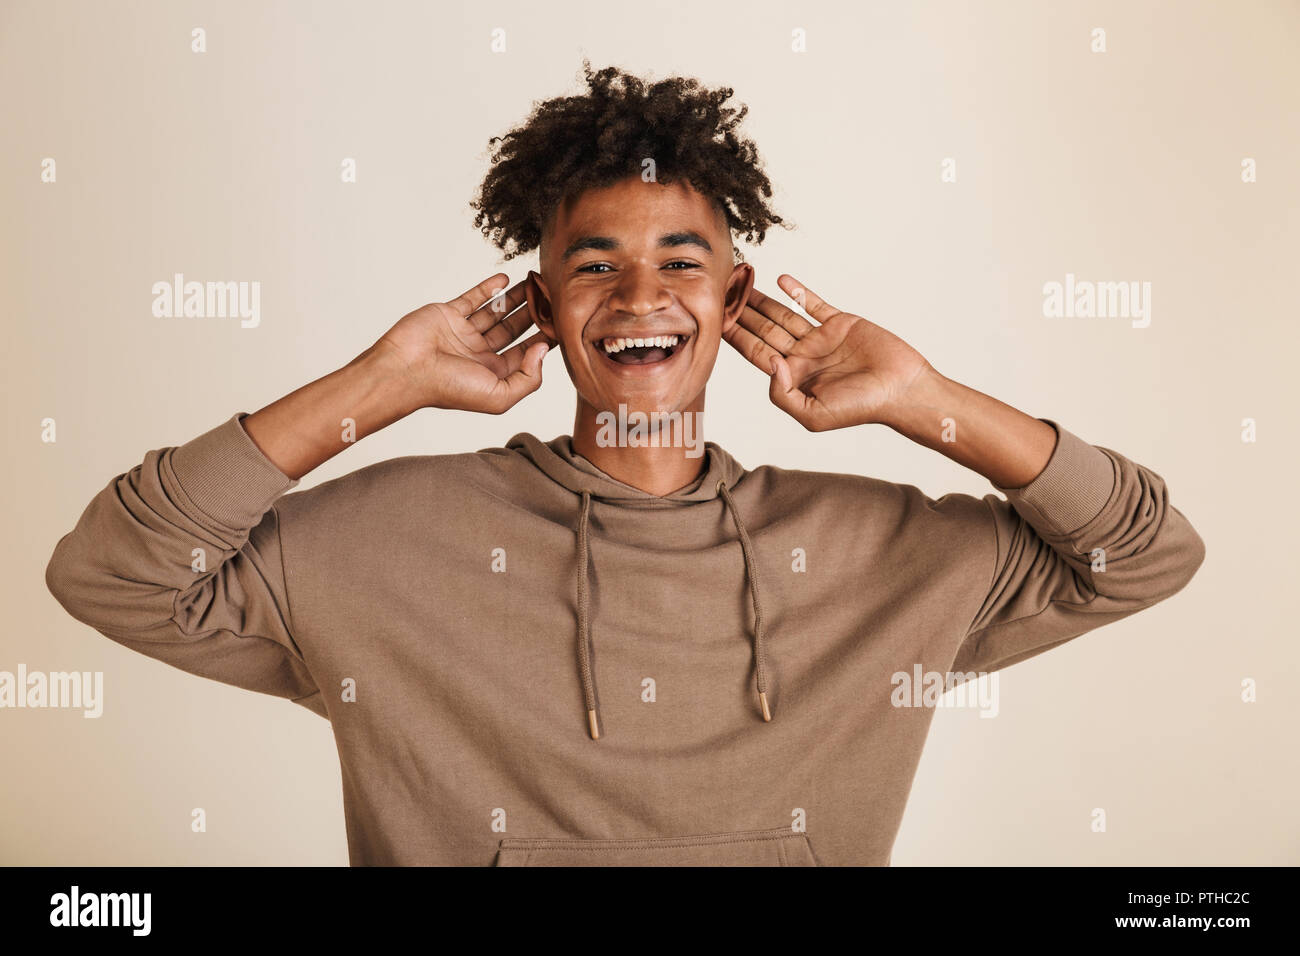 Portrait of a smiling young afro american man dressed in hoodie grimacing isolated - Stock Image